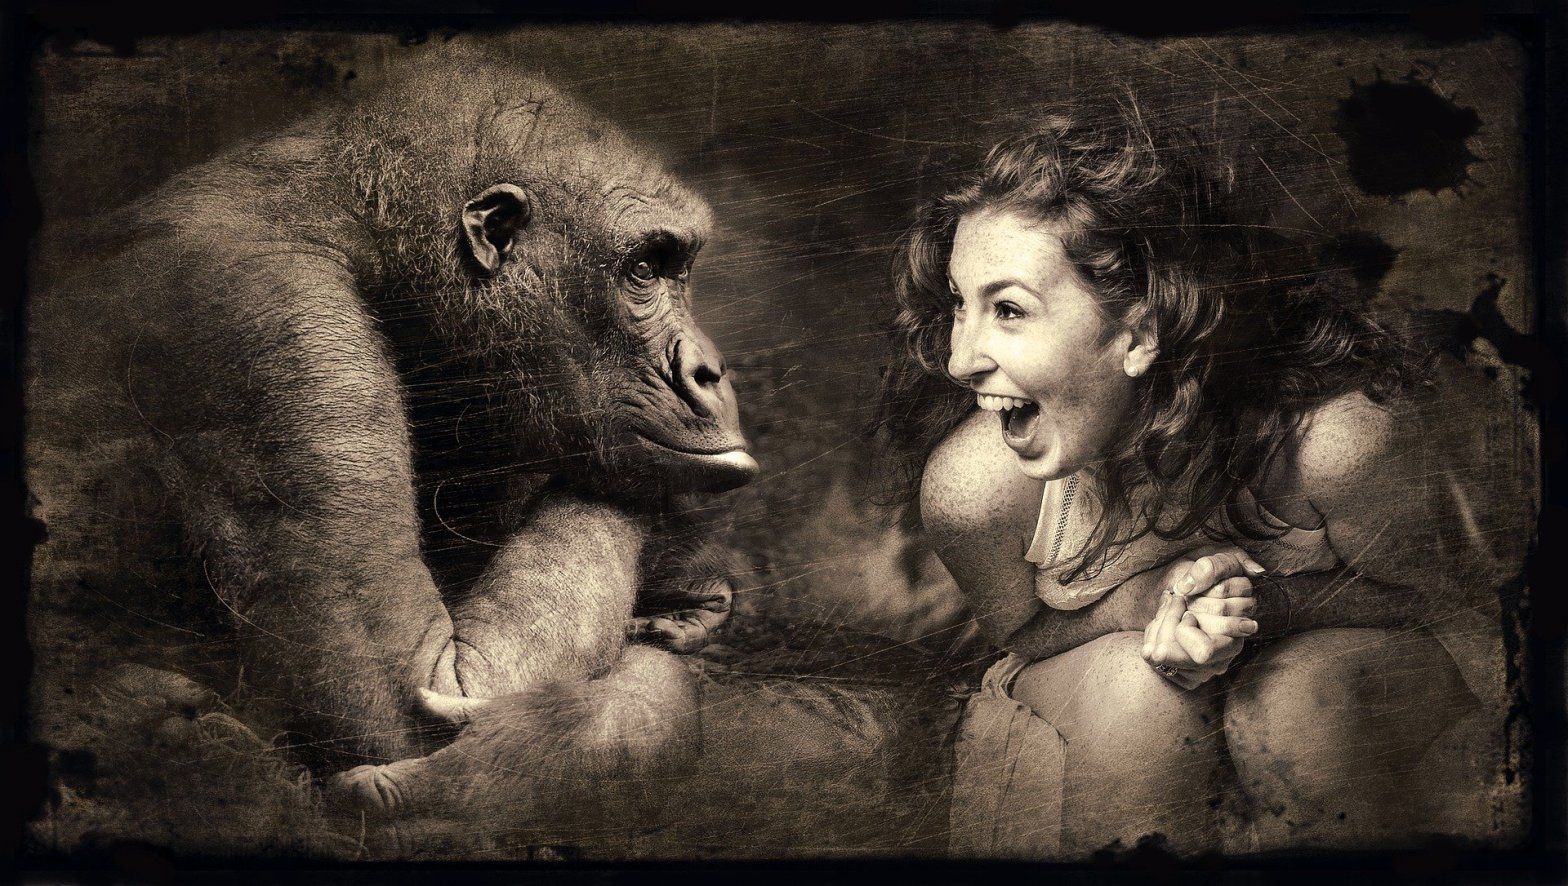 woman looking at a monkey, laughing in delight.